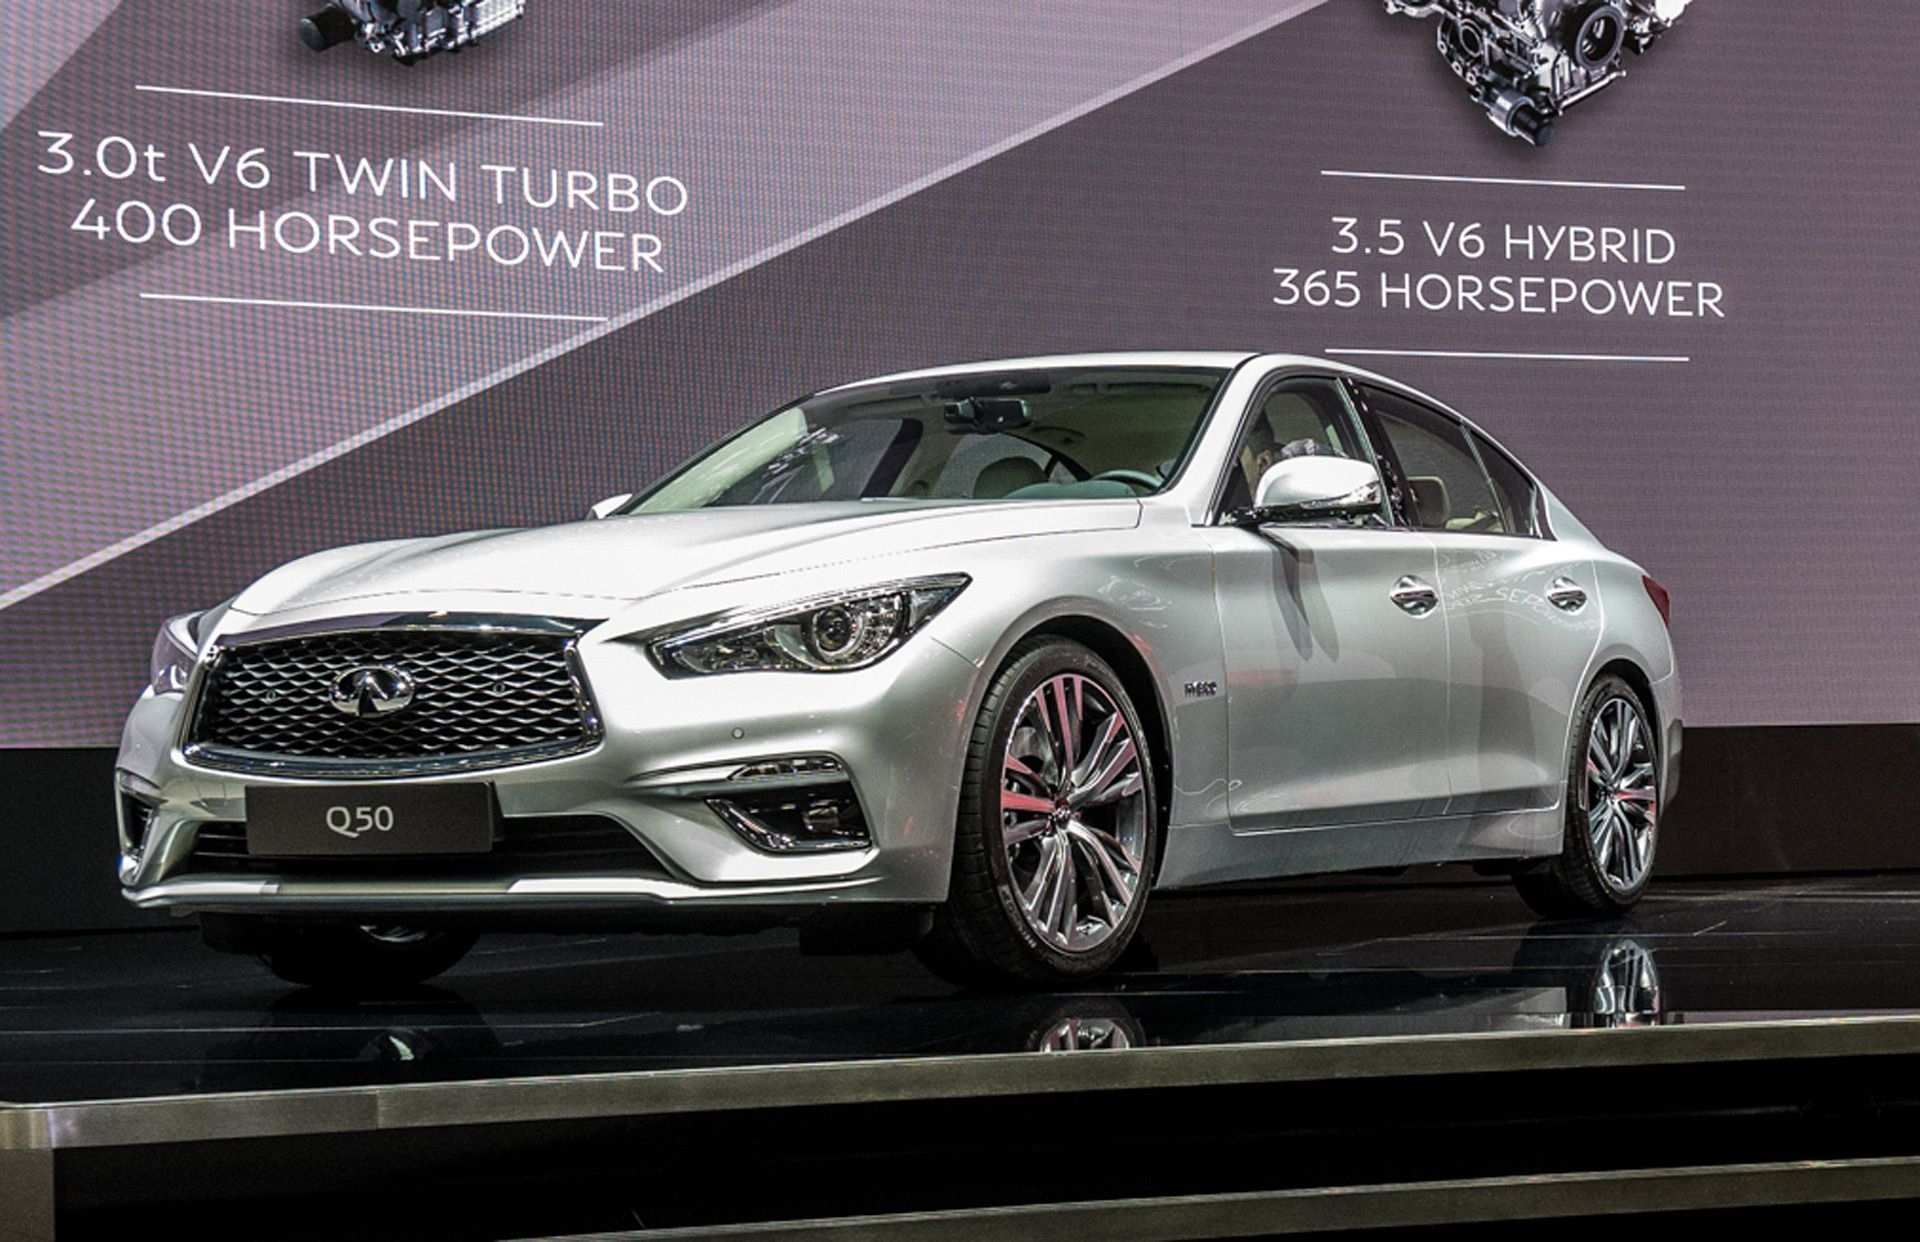 29 Concept of New Infiniti 2020 Pictures for New Infiniti 2020